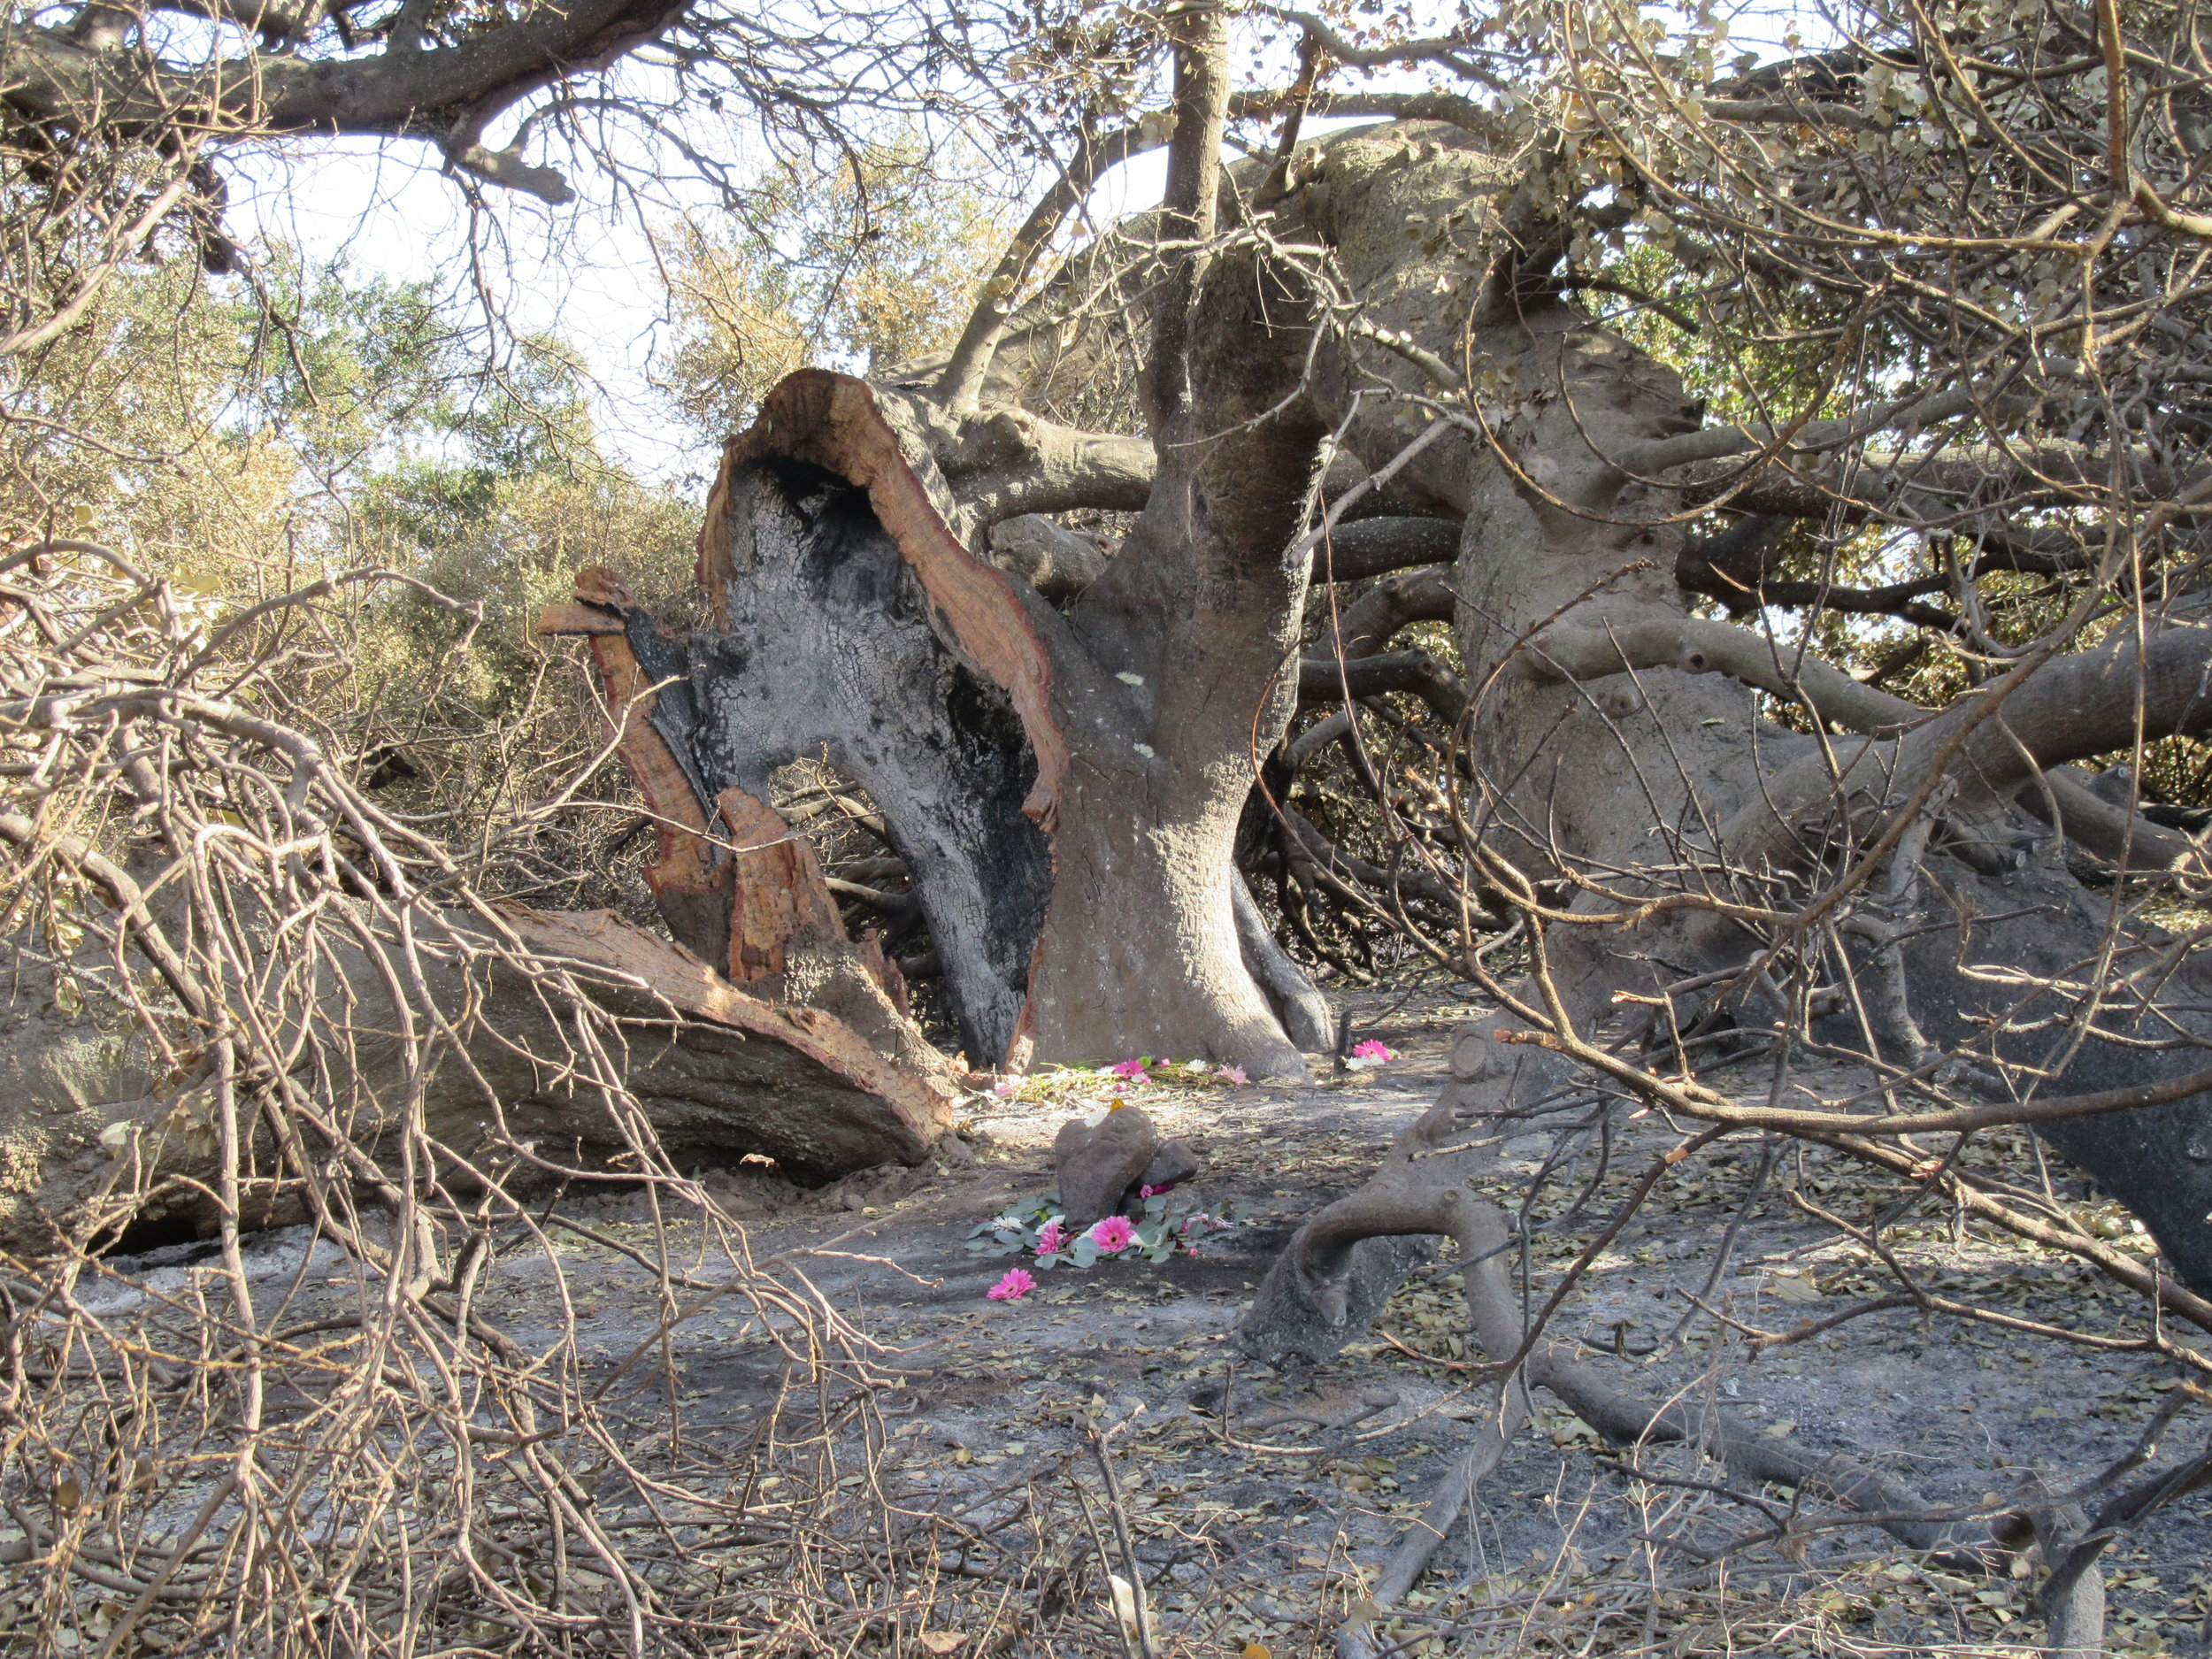 BABA'S TREE shown 30 days after the 2017 Thomas Fire with flowers marking the approximate spot where Meher Baba sat in 1956.(Photo: Sam Ervin, January 5, 2018)